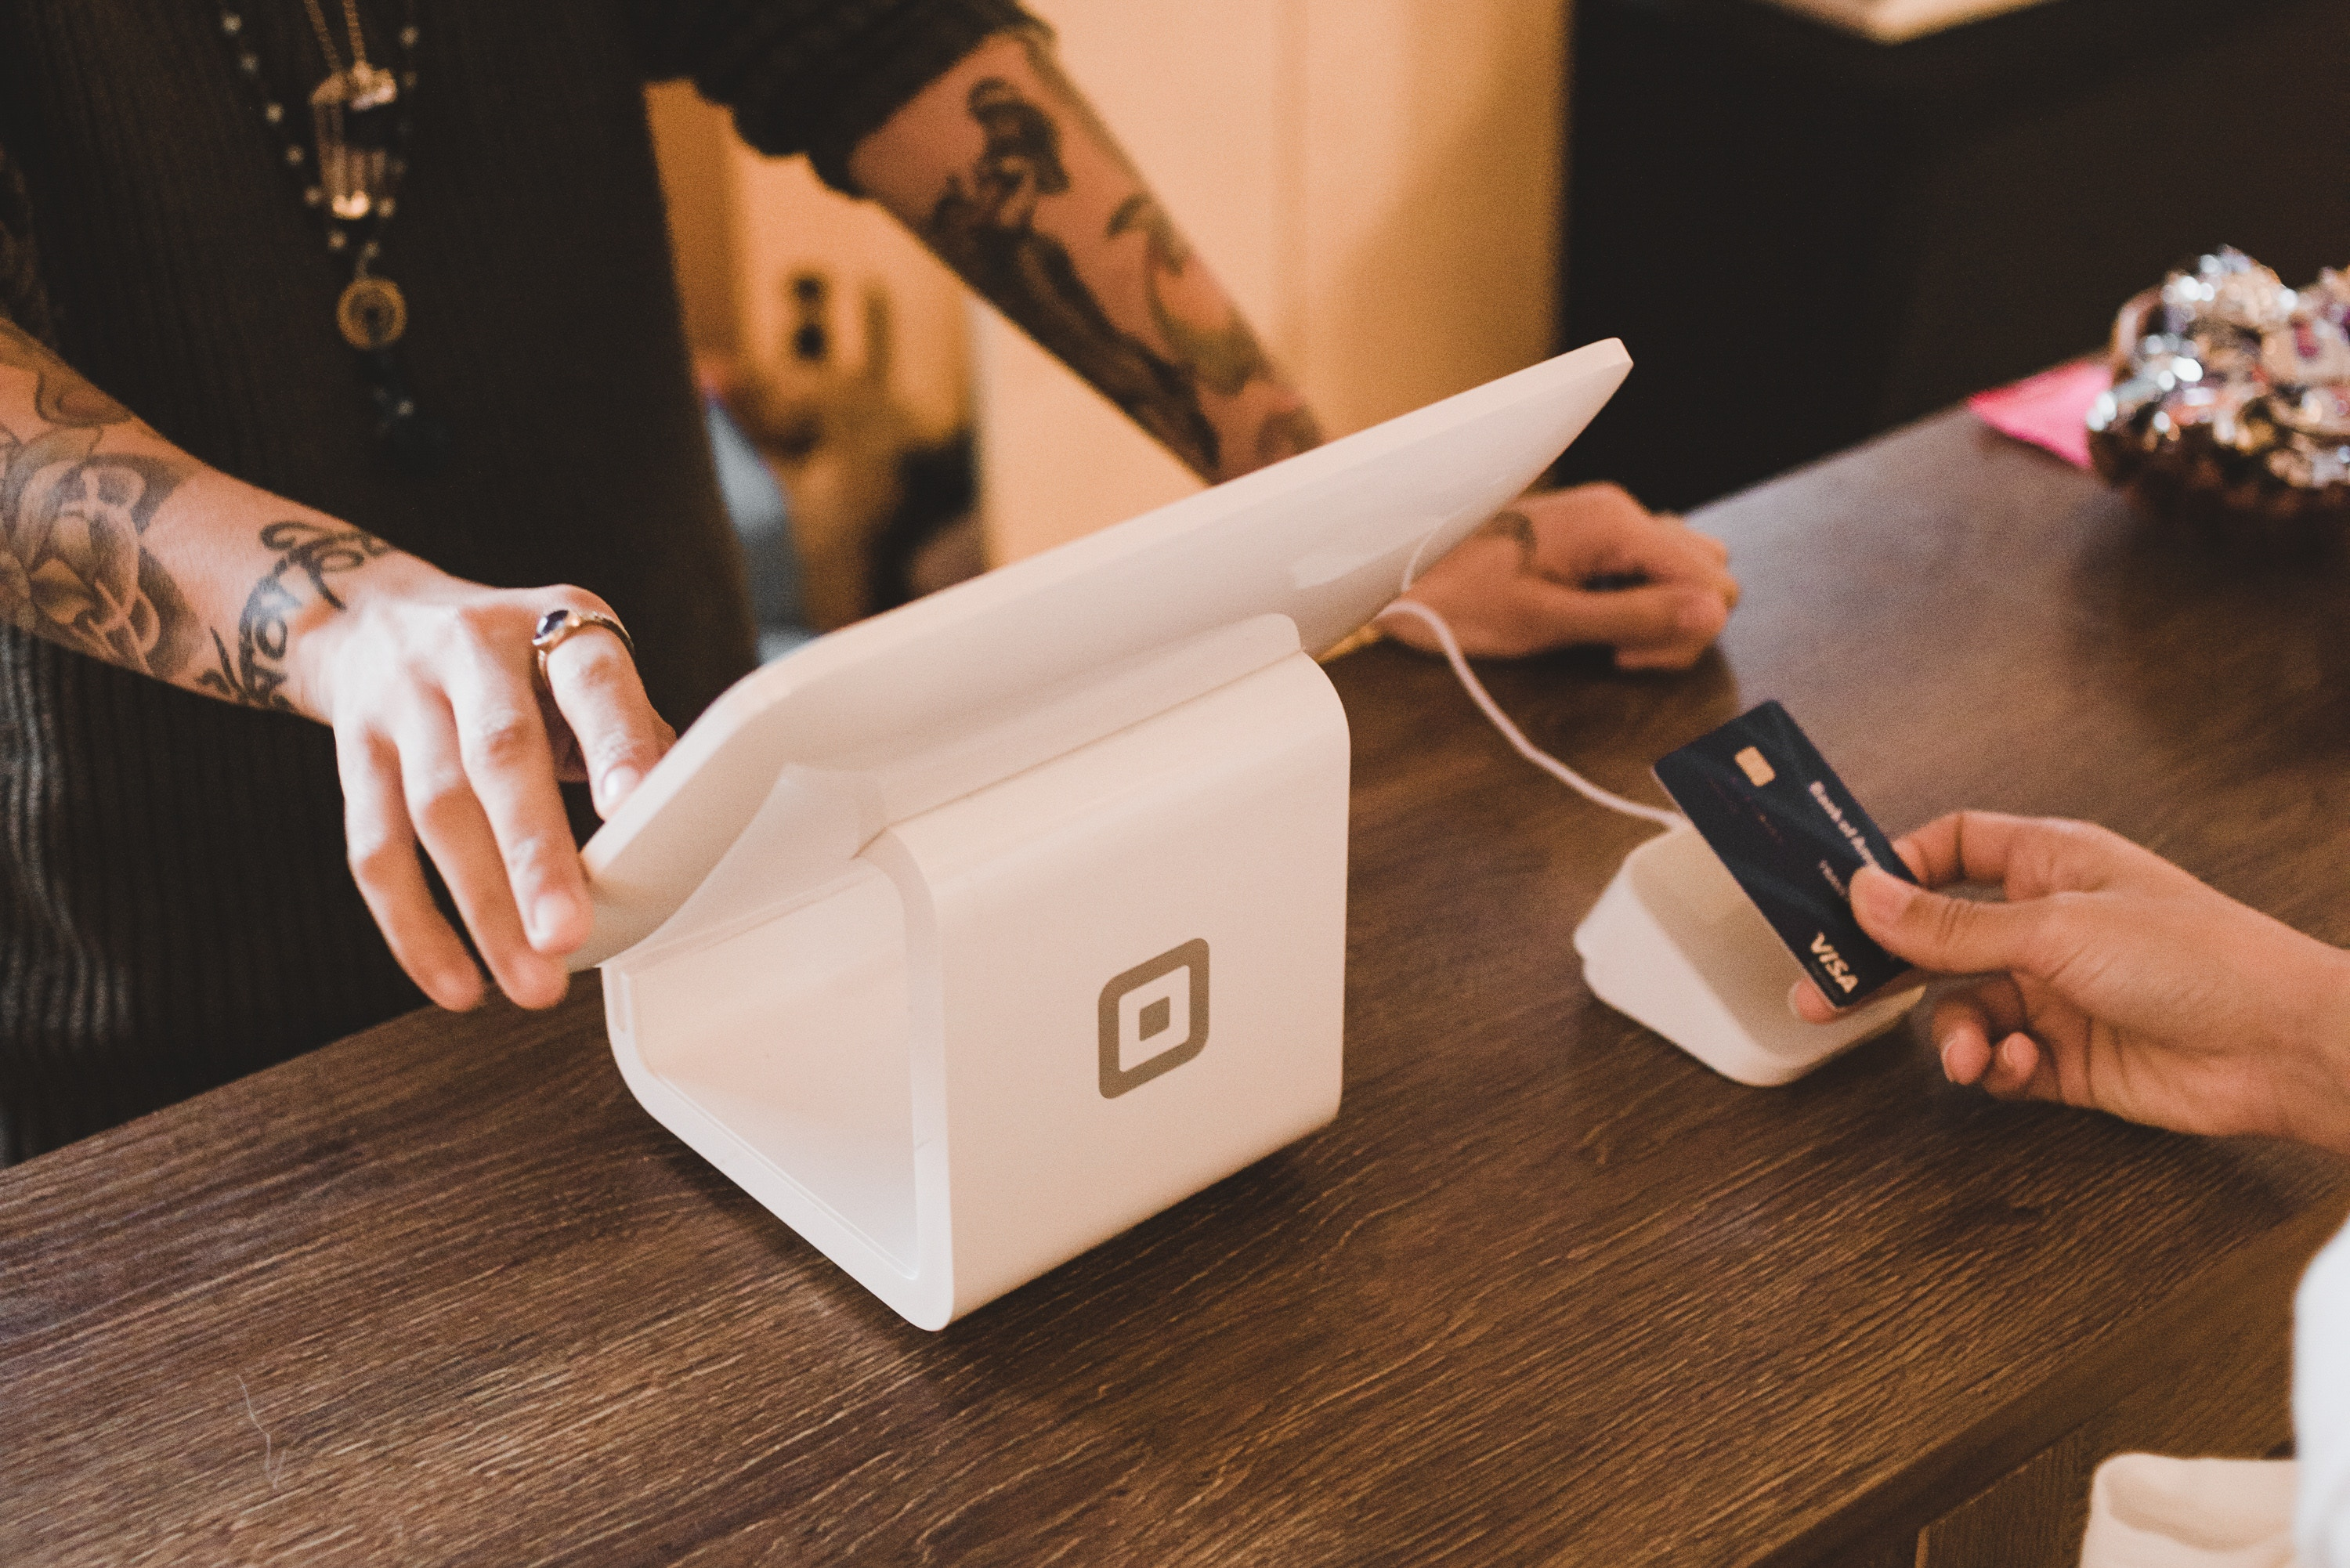 Square Has 90 Million Email Addresses and Sends Only a Small % of Receipts to the Wrong Person